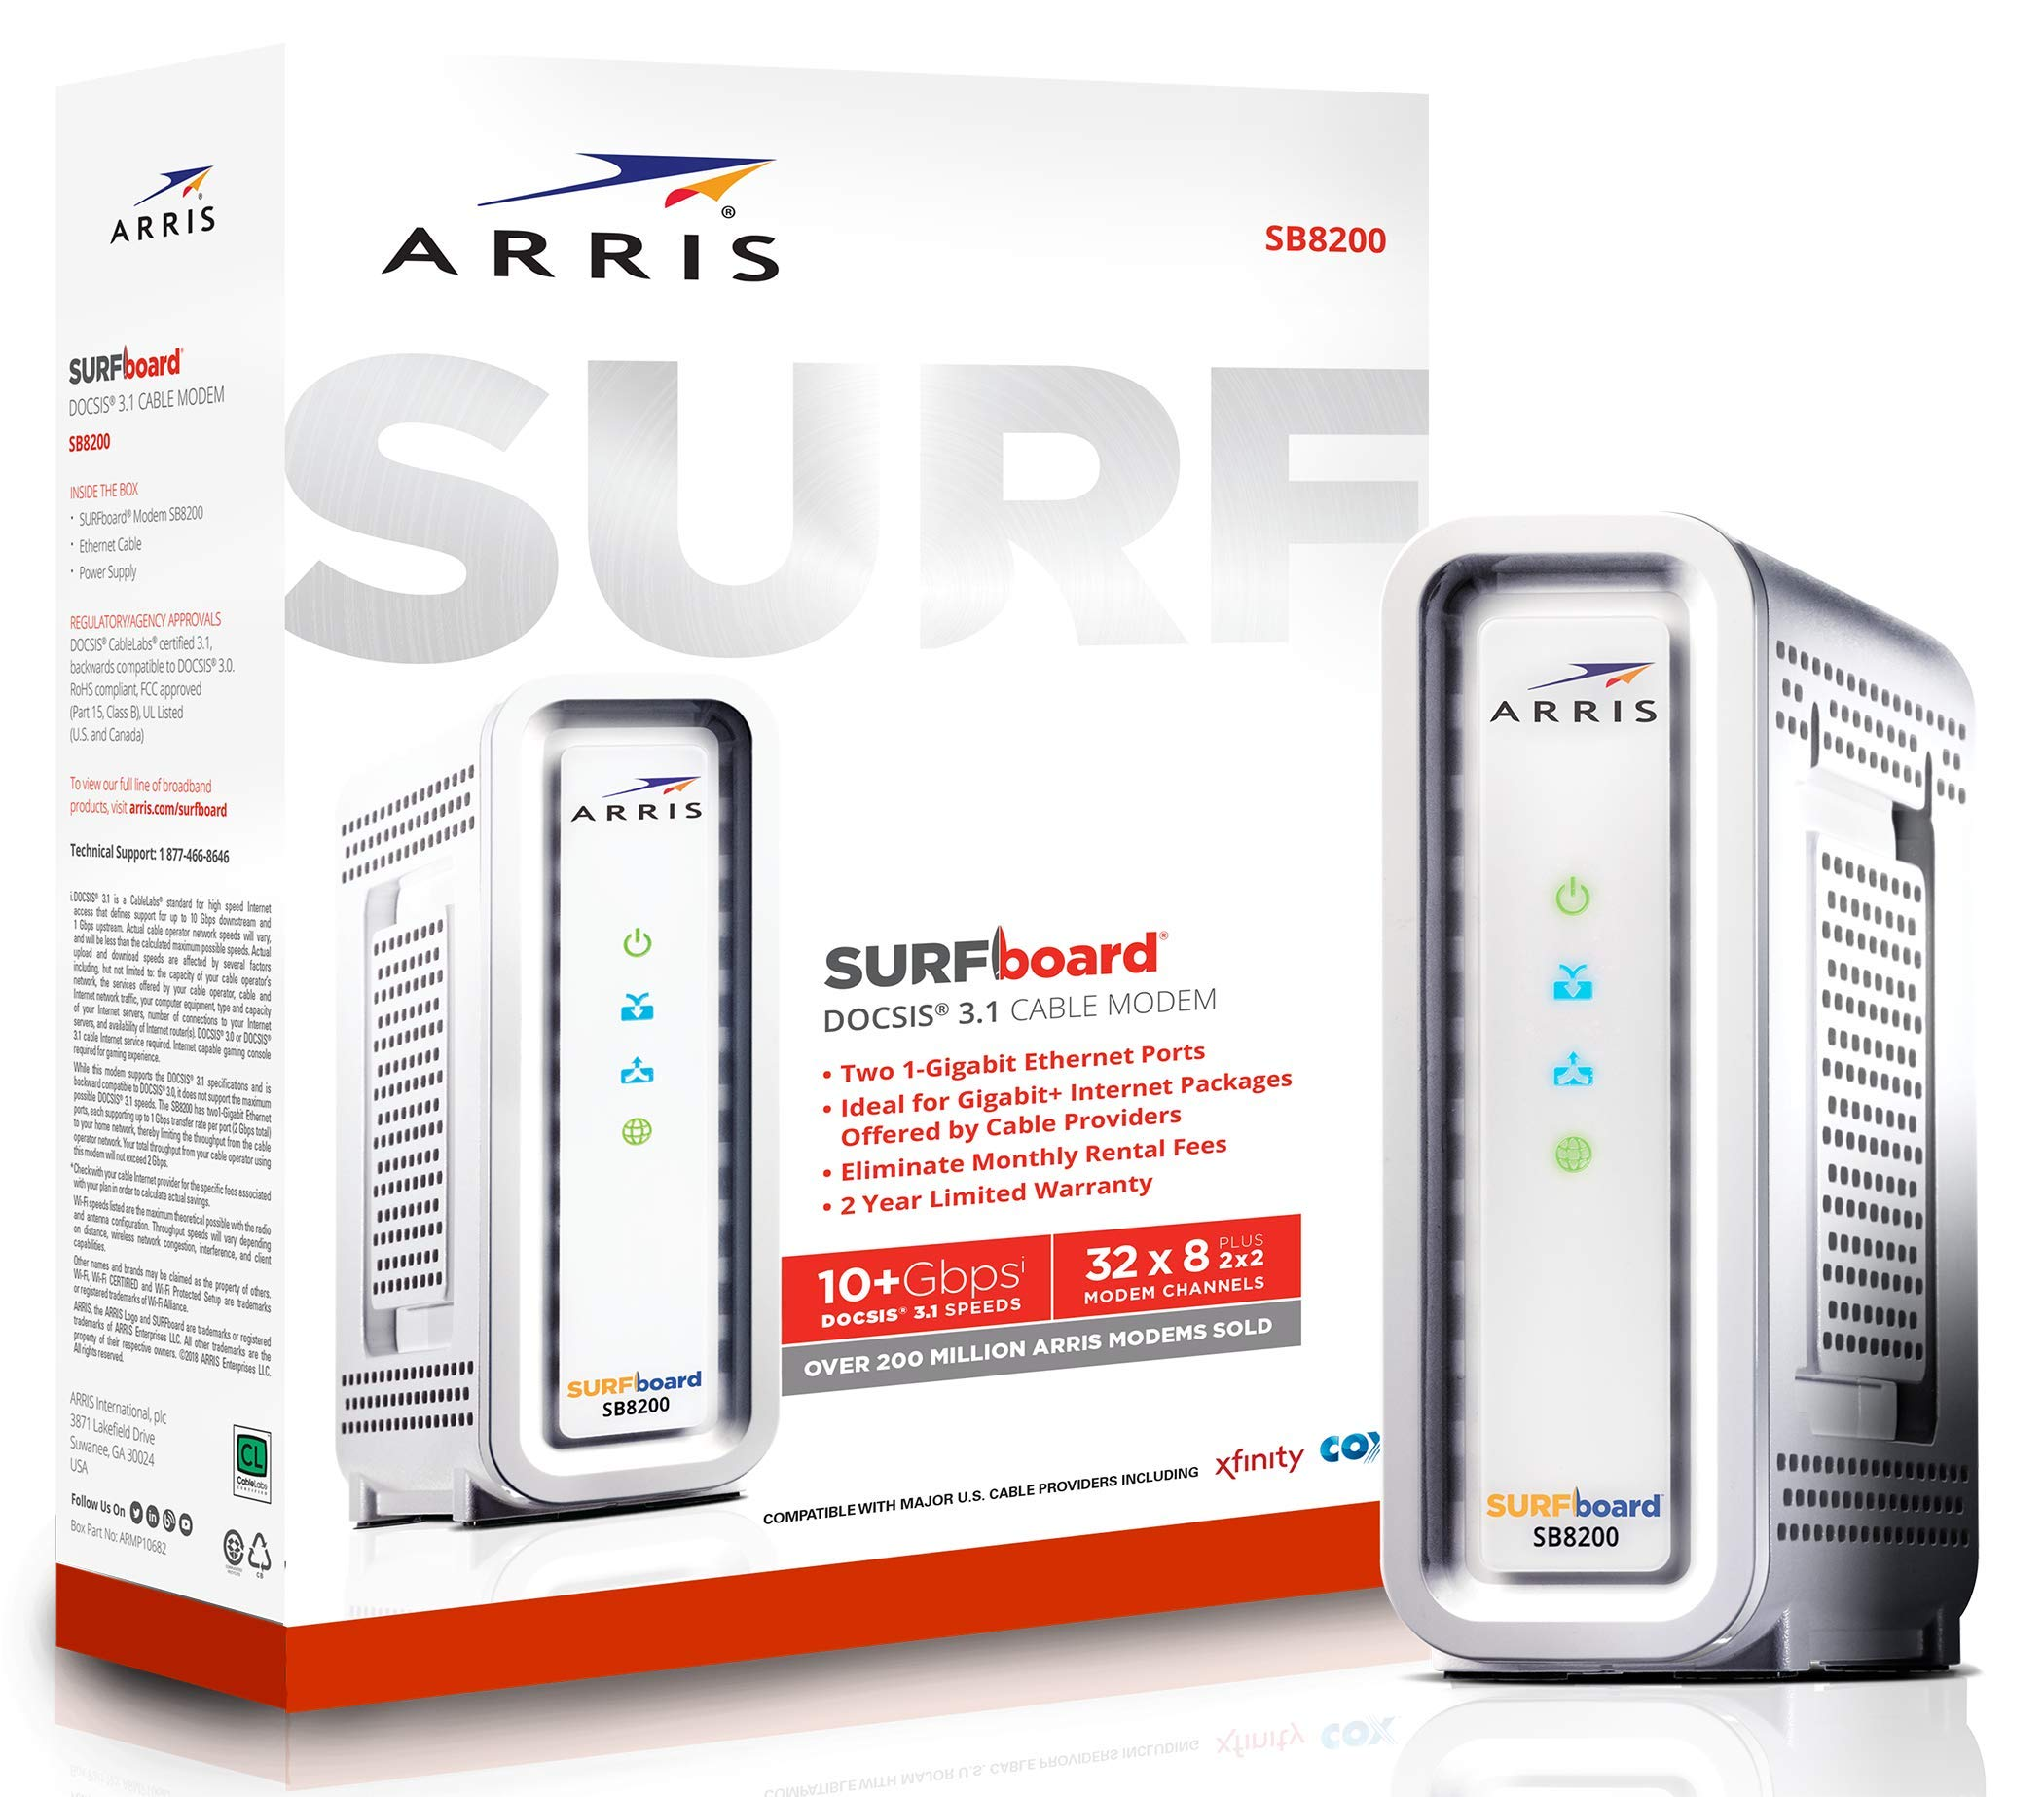 ARRIS SURFboard Docsis 3.1 Gigabit Speed Cable Modem, Approved for Cox, Spectrum and Xfinity, (SB8200 Frustration Free) by ARRIS